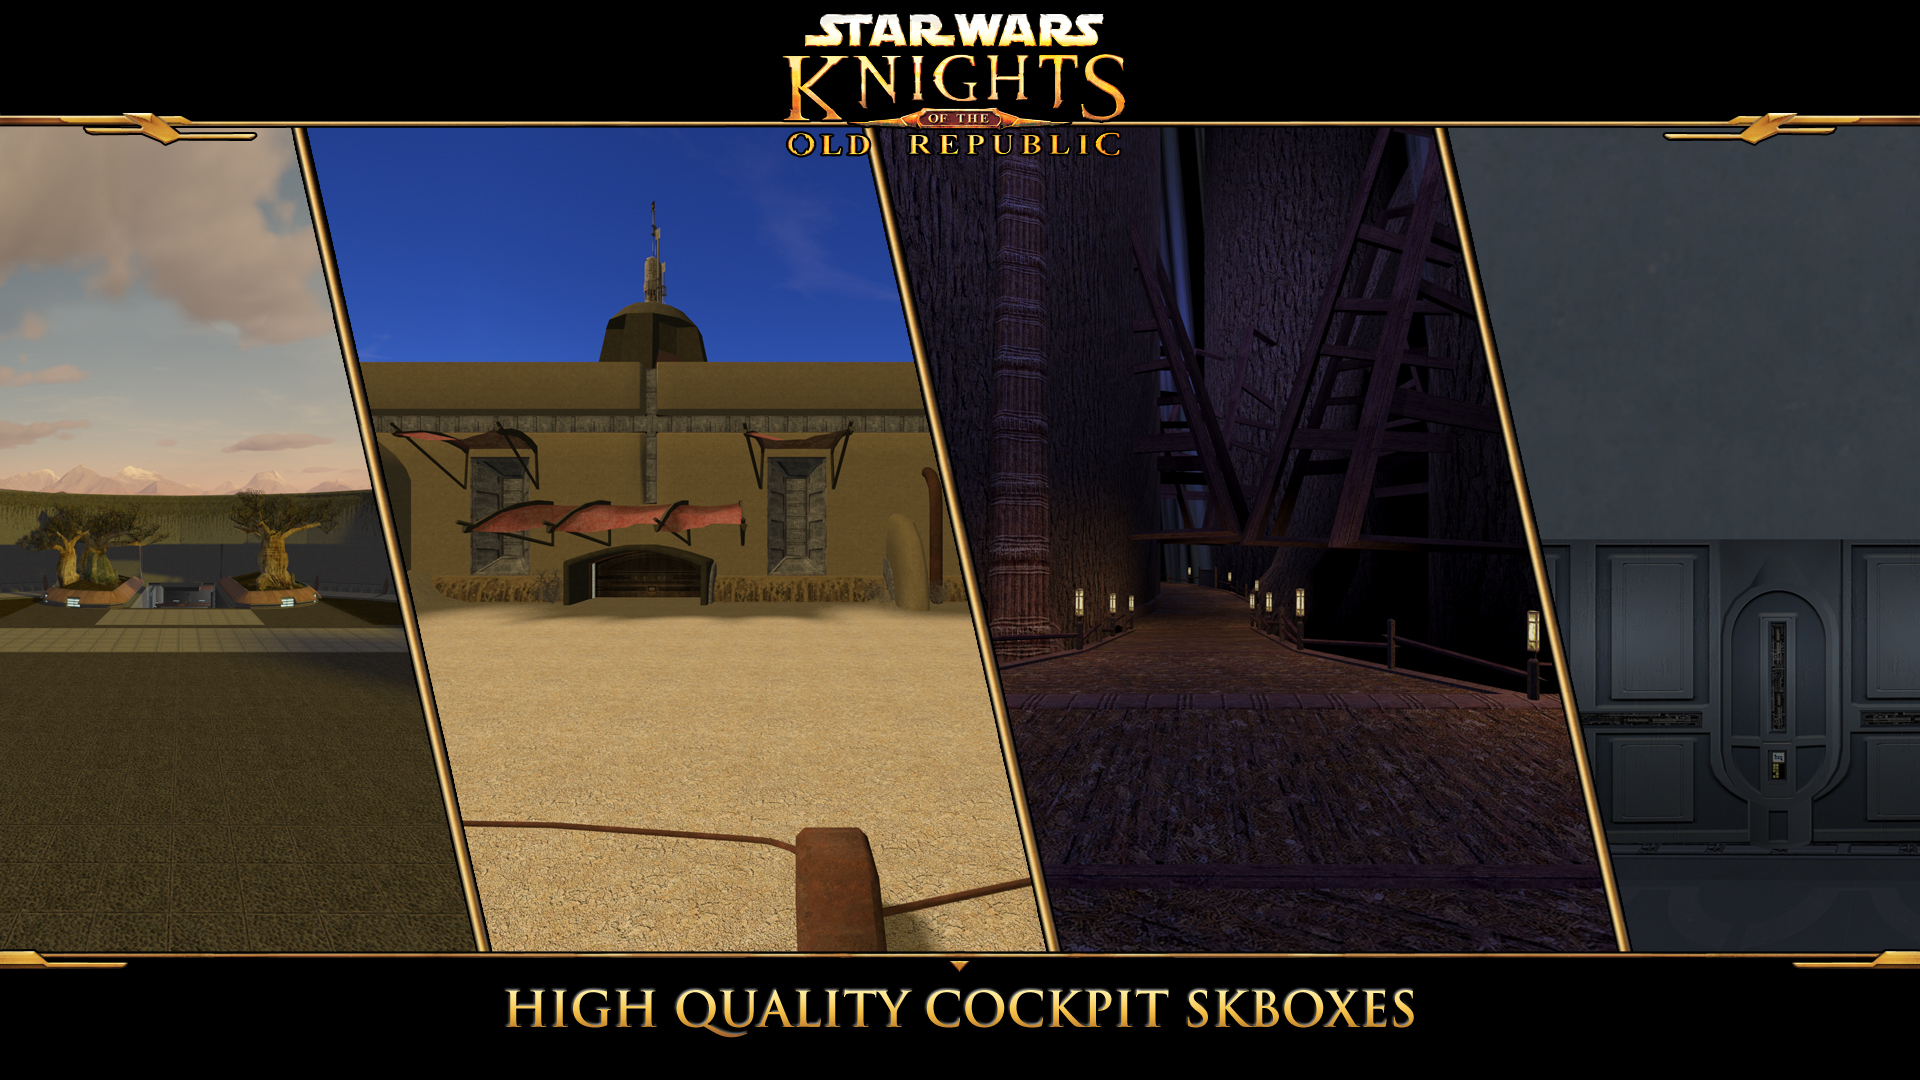 High Quality Cockpit Skyboxes - Star Wars: Knights of the